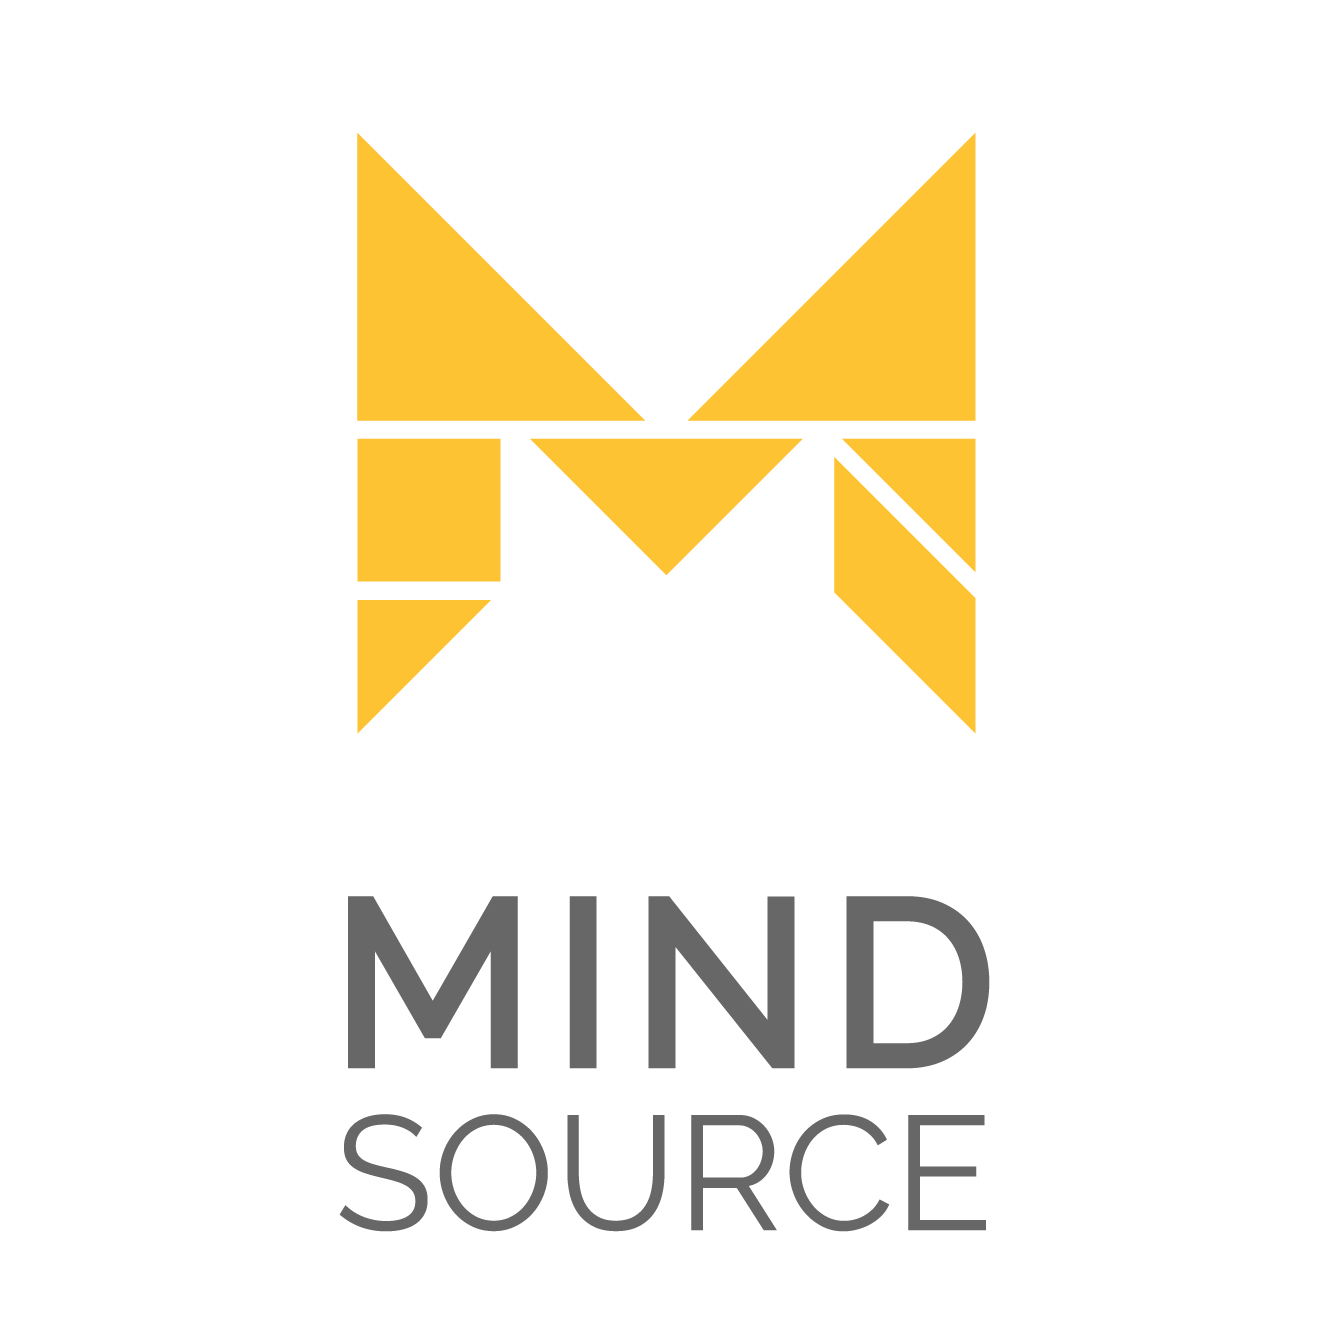 Logotipo Mind Source vertical